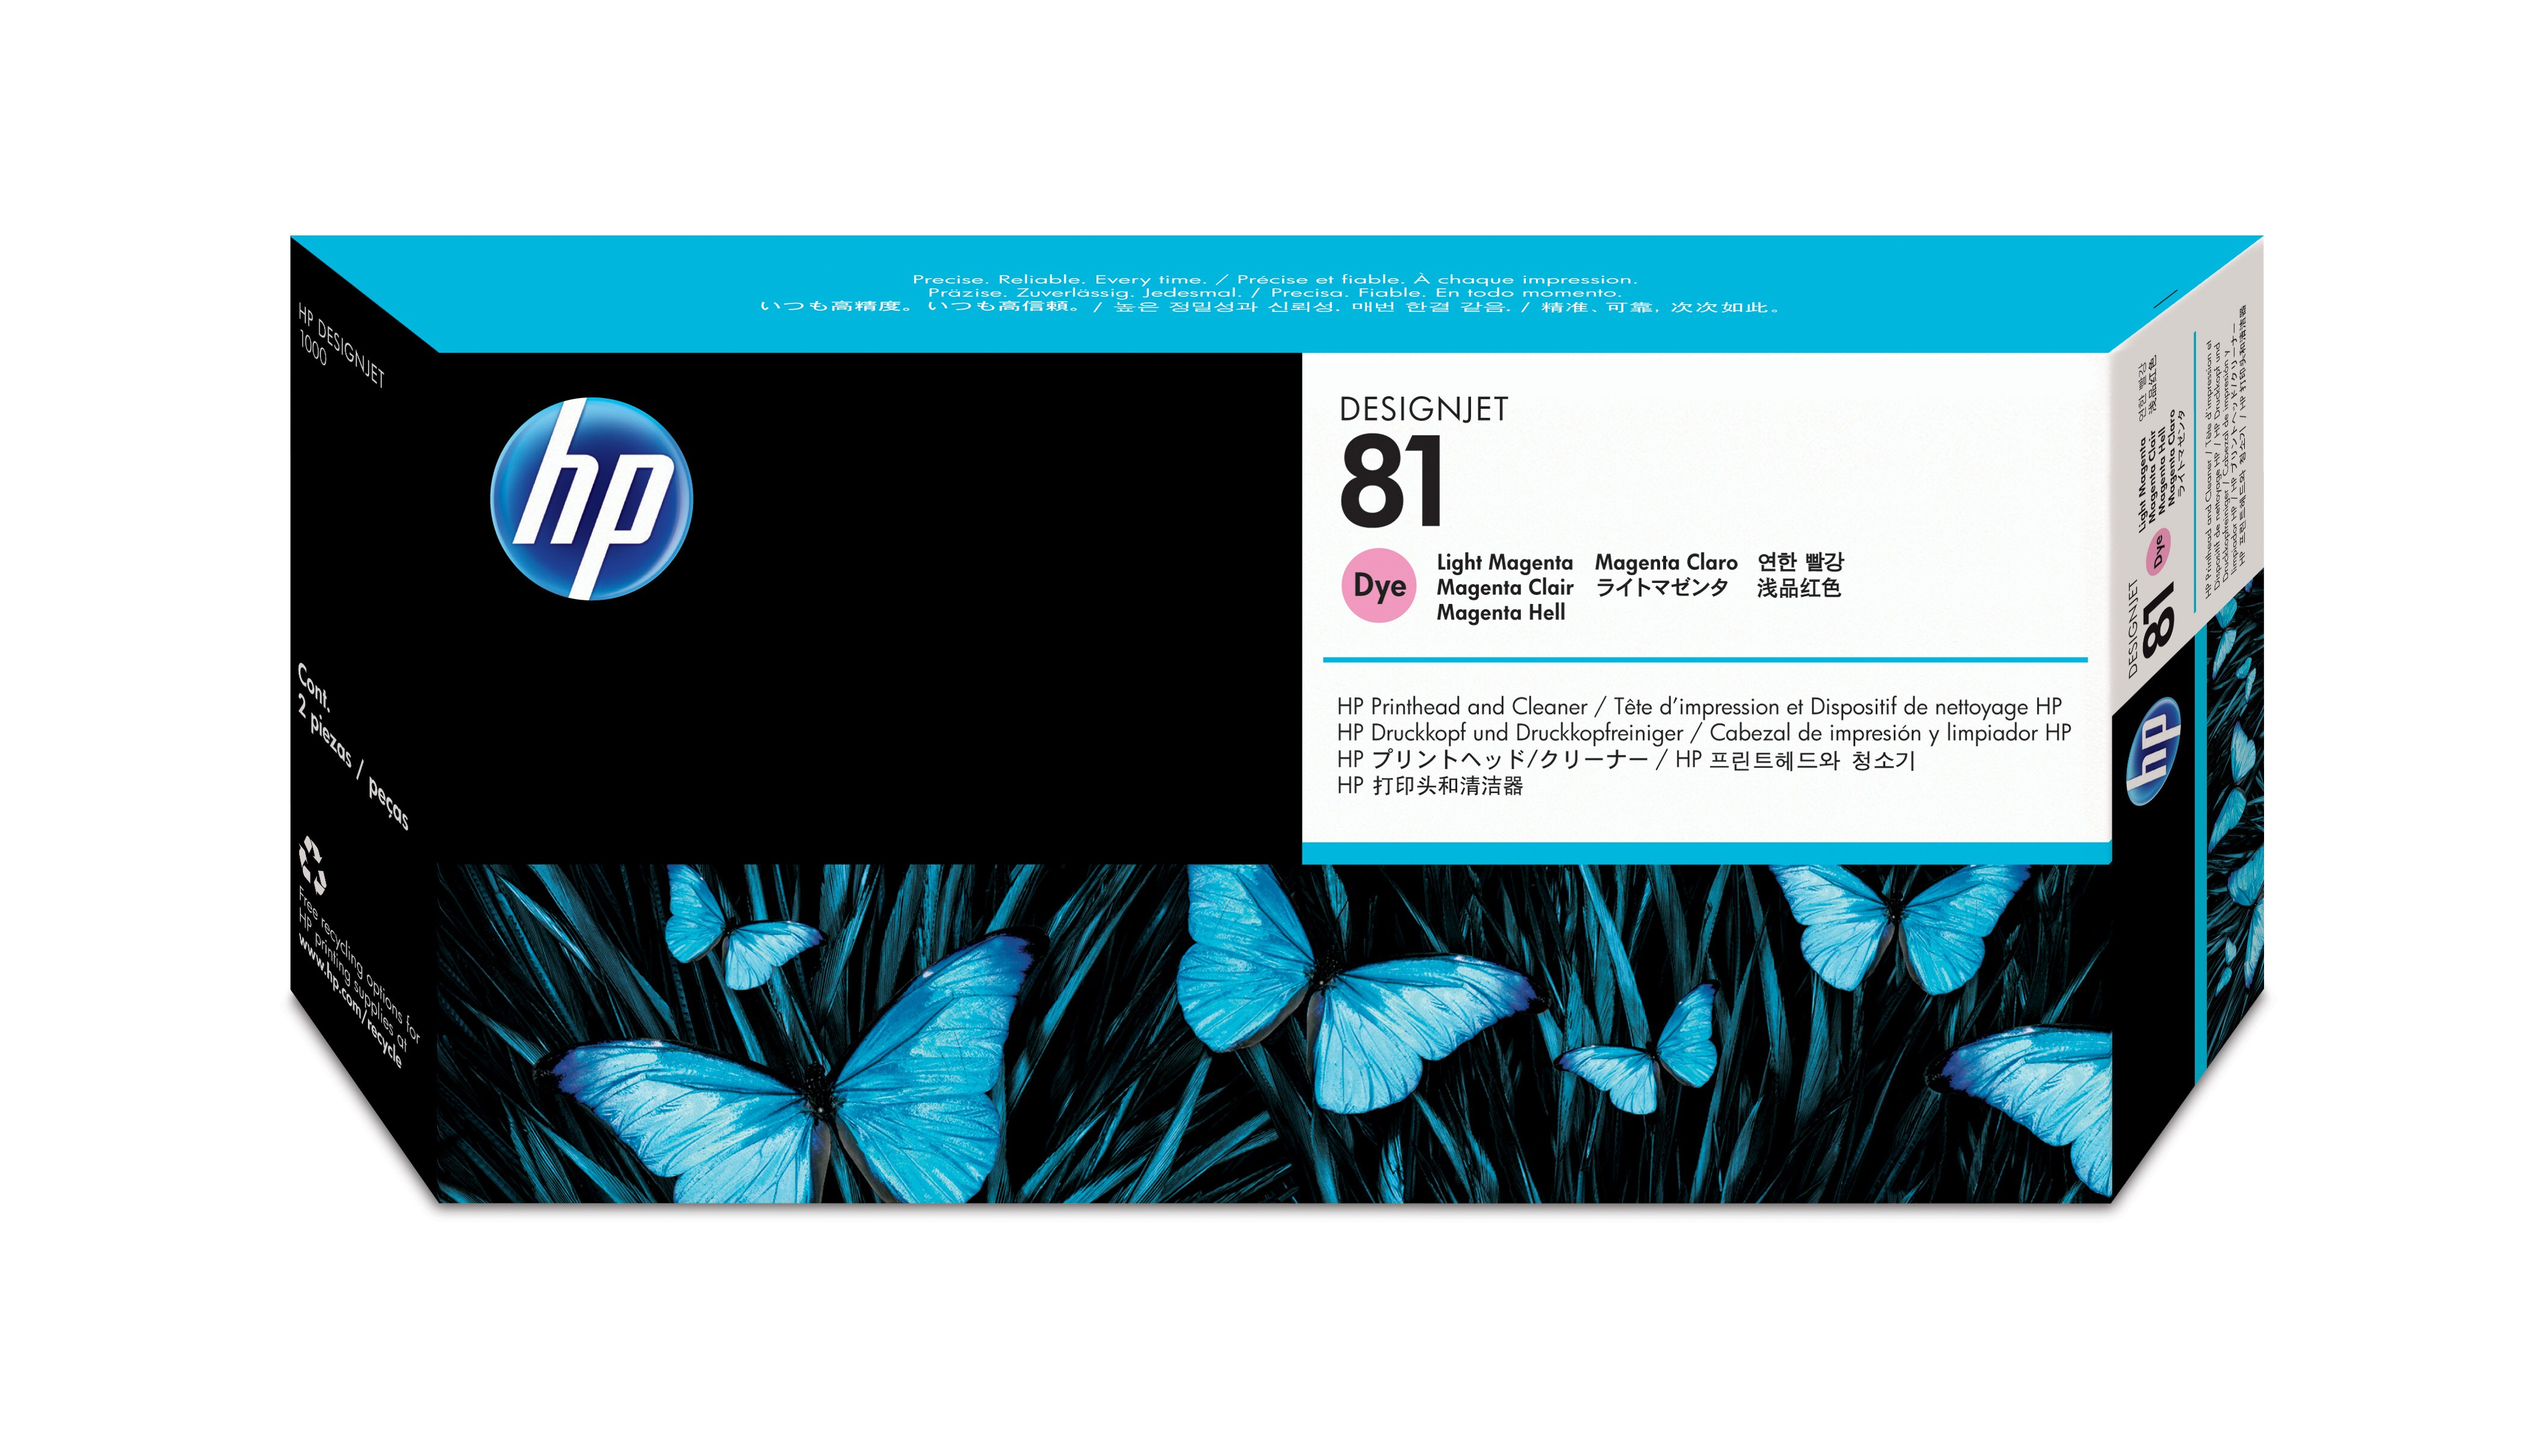 HP No. 81 Dye Ink Printhead And Cleaner-Light Magenta C4955a